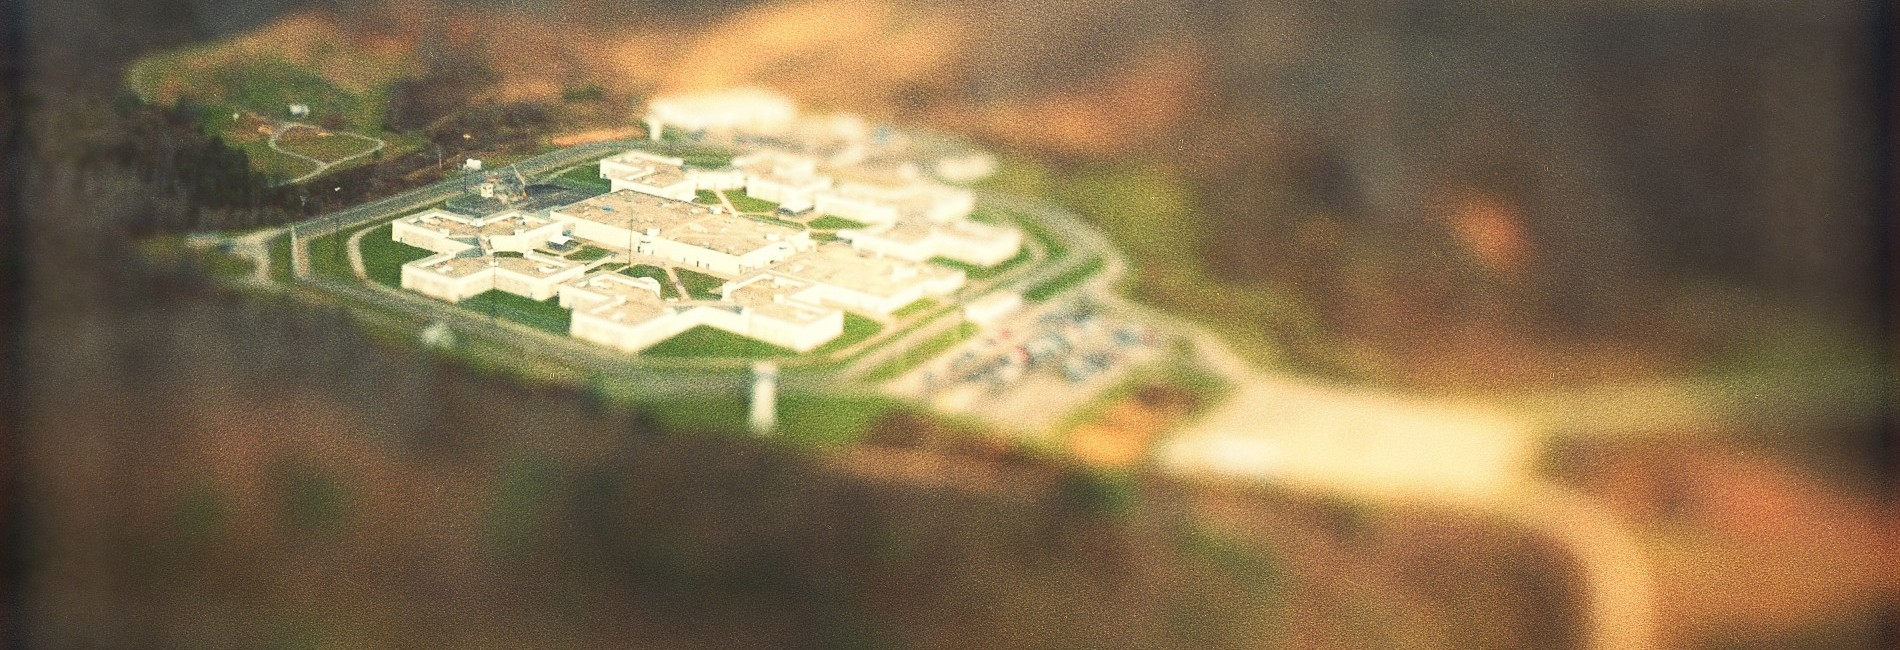 Red Onion State Prison (Aerial)